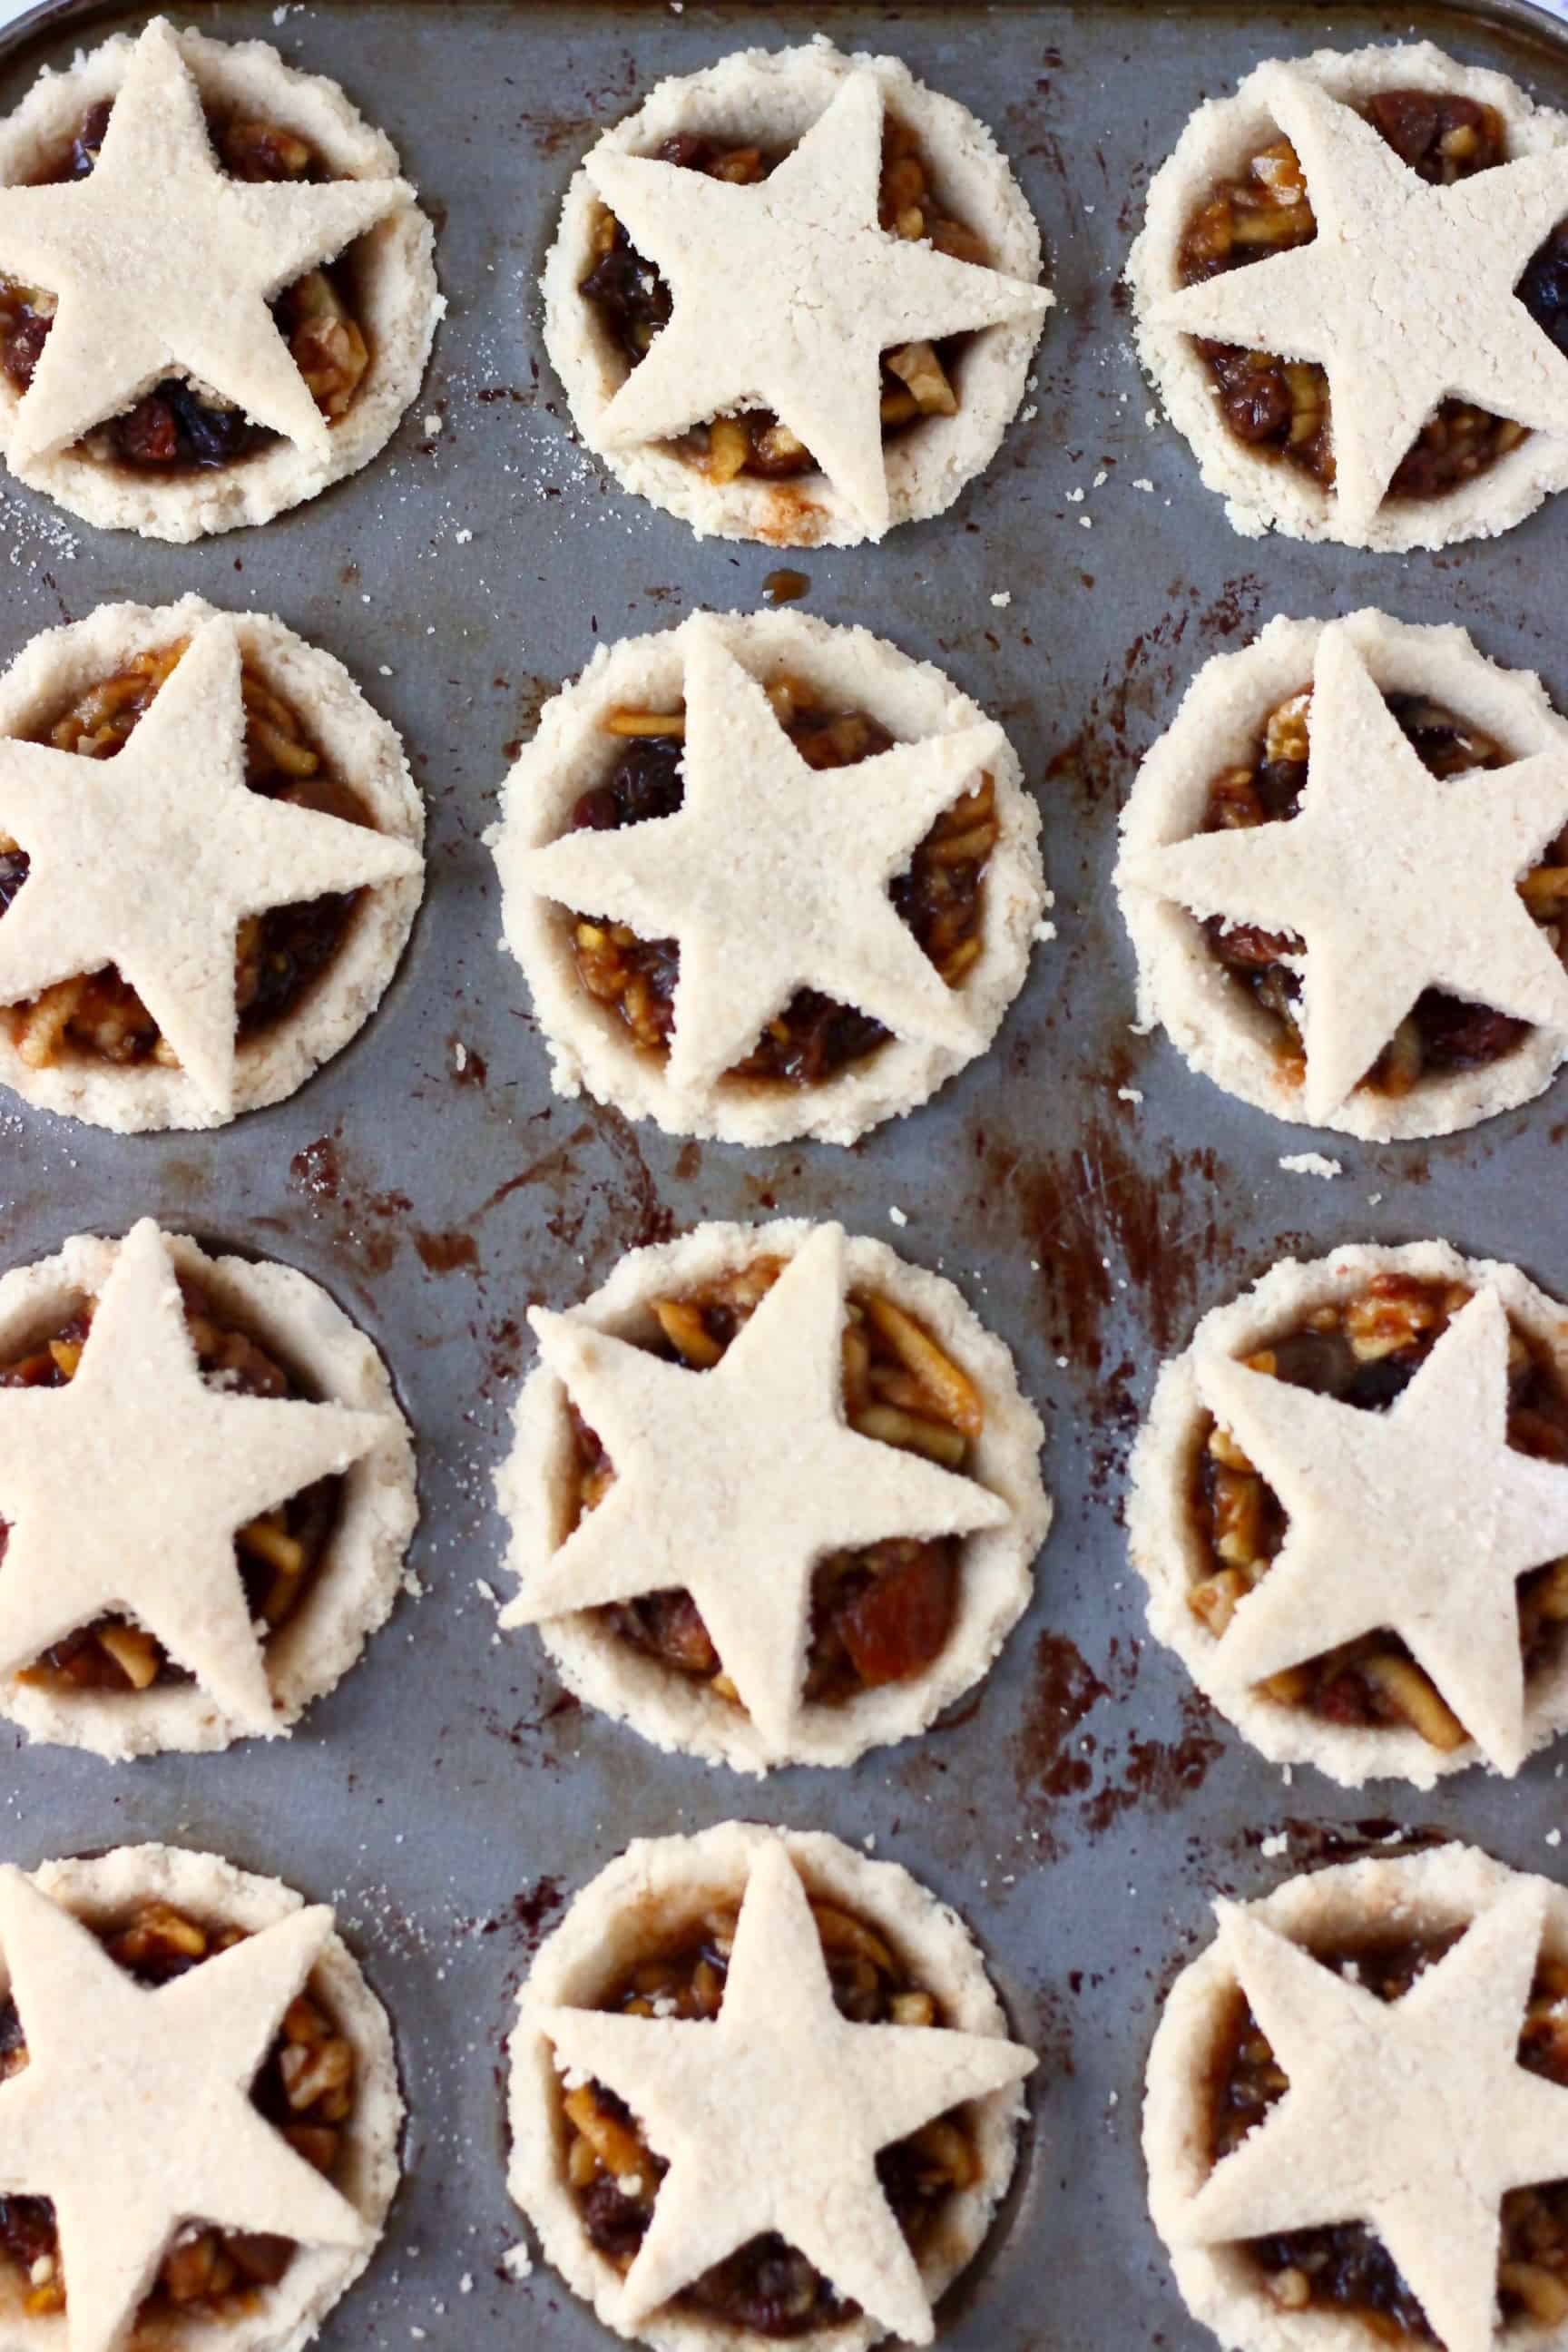 Twelve raw gluten-free vegan mince pies pastry crusts in a muffin tin filled with vegan mincemeat and topped with pastry stars